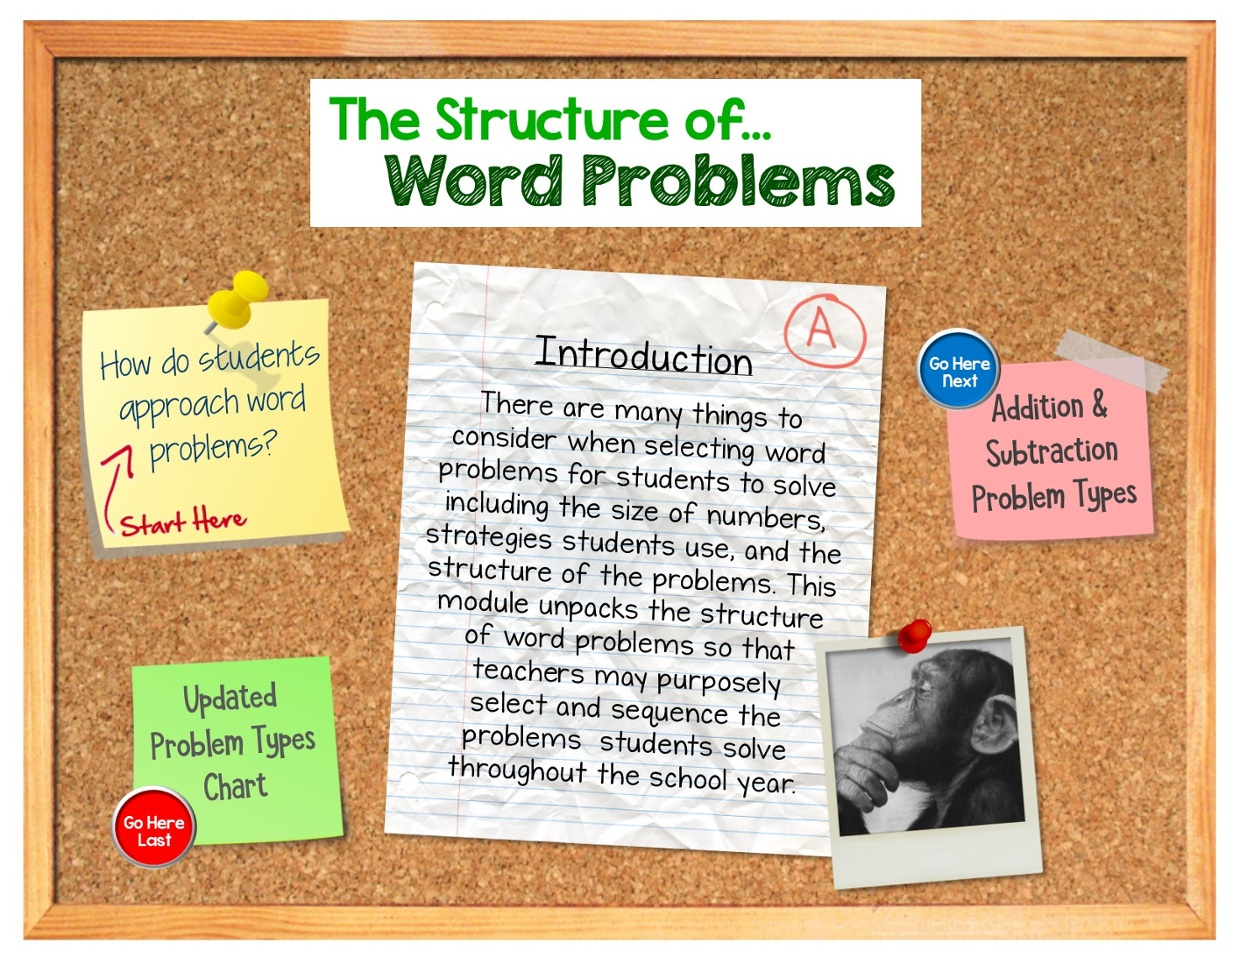 The Structure of Word Problems - Addition and Subtraction